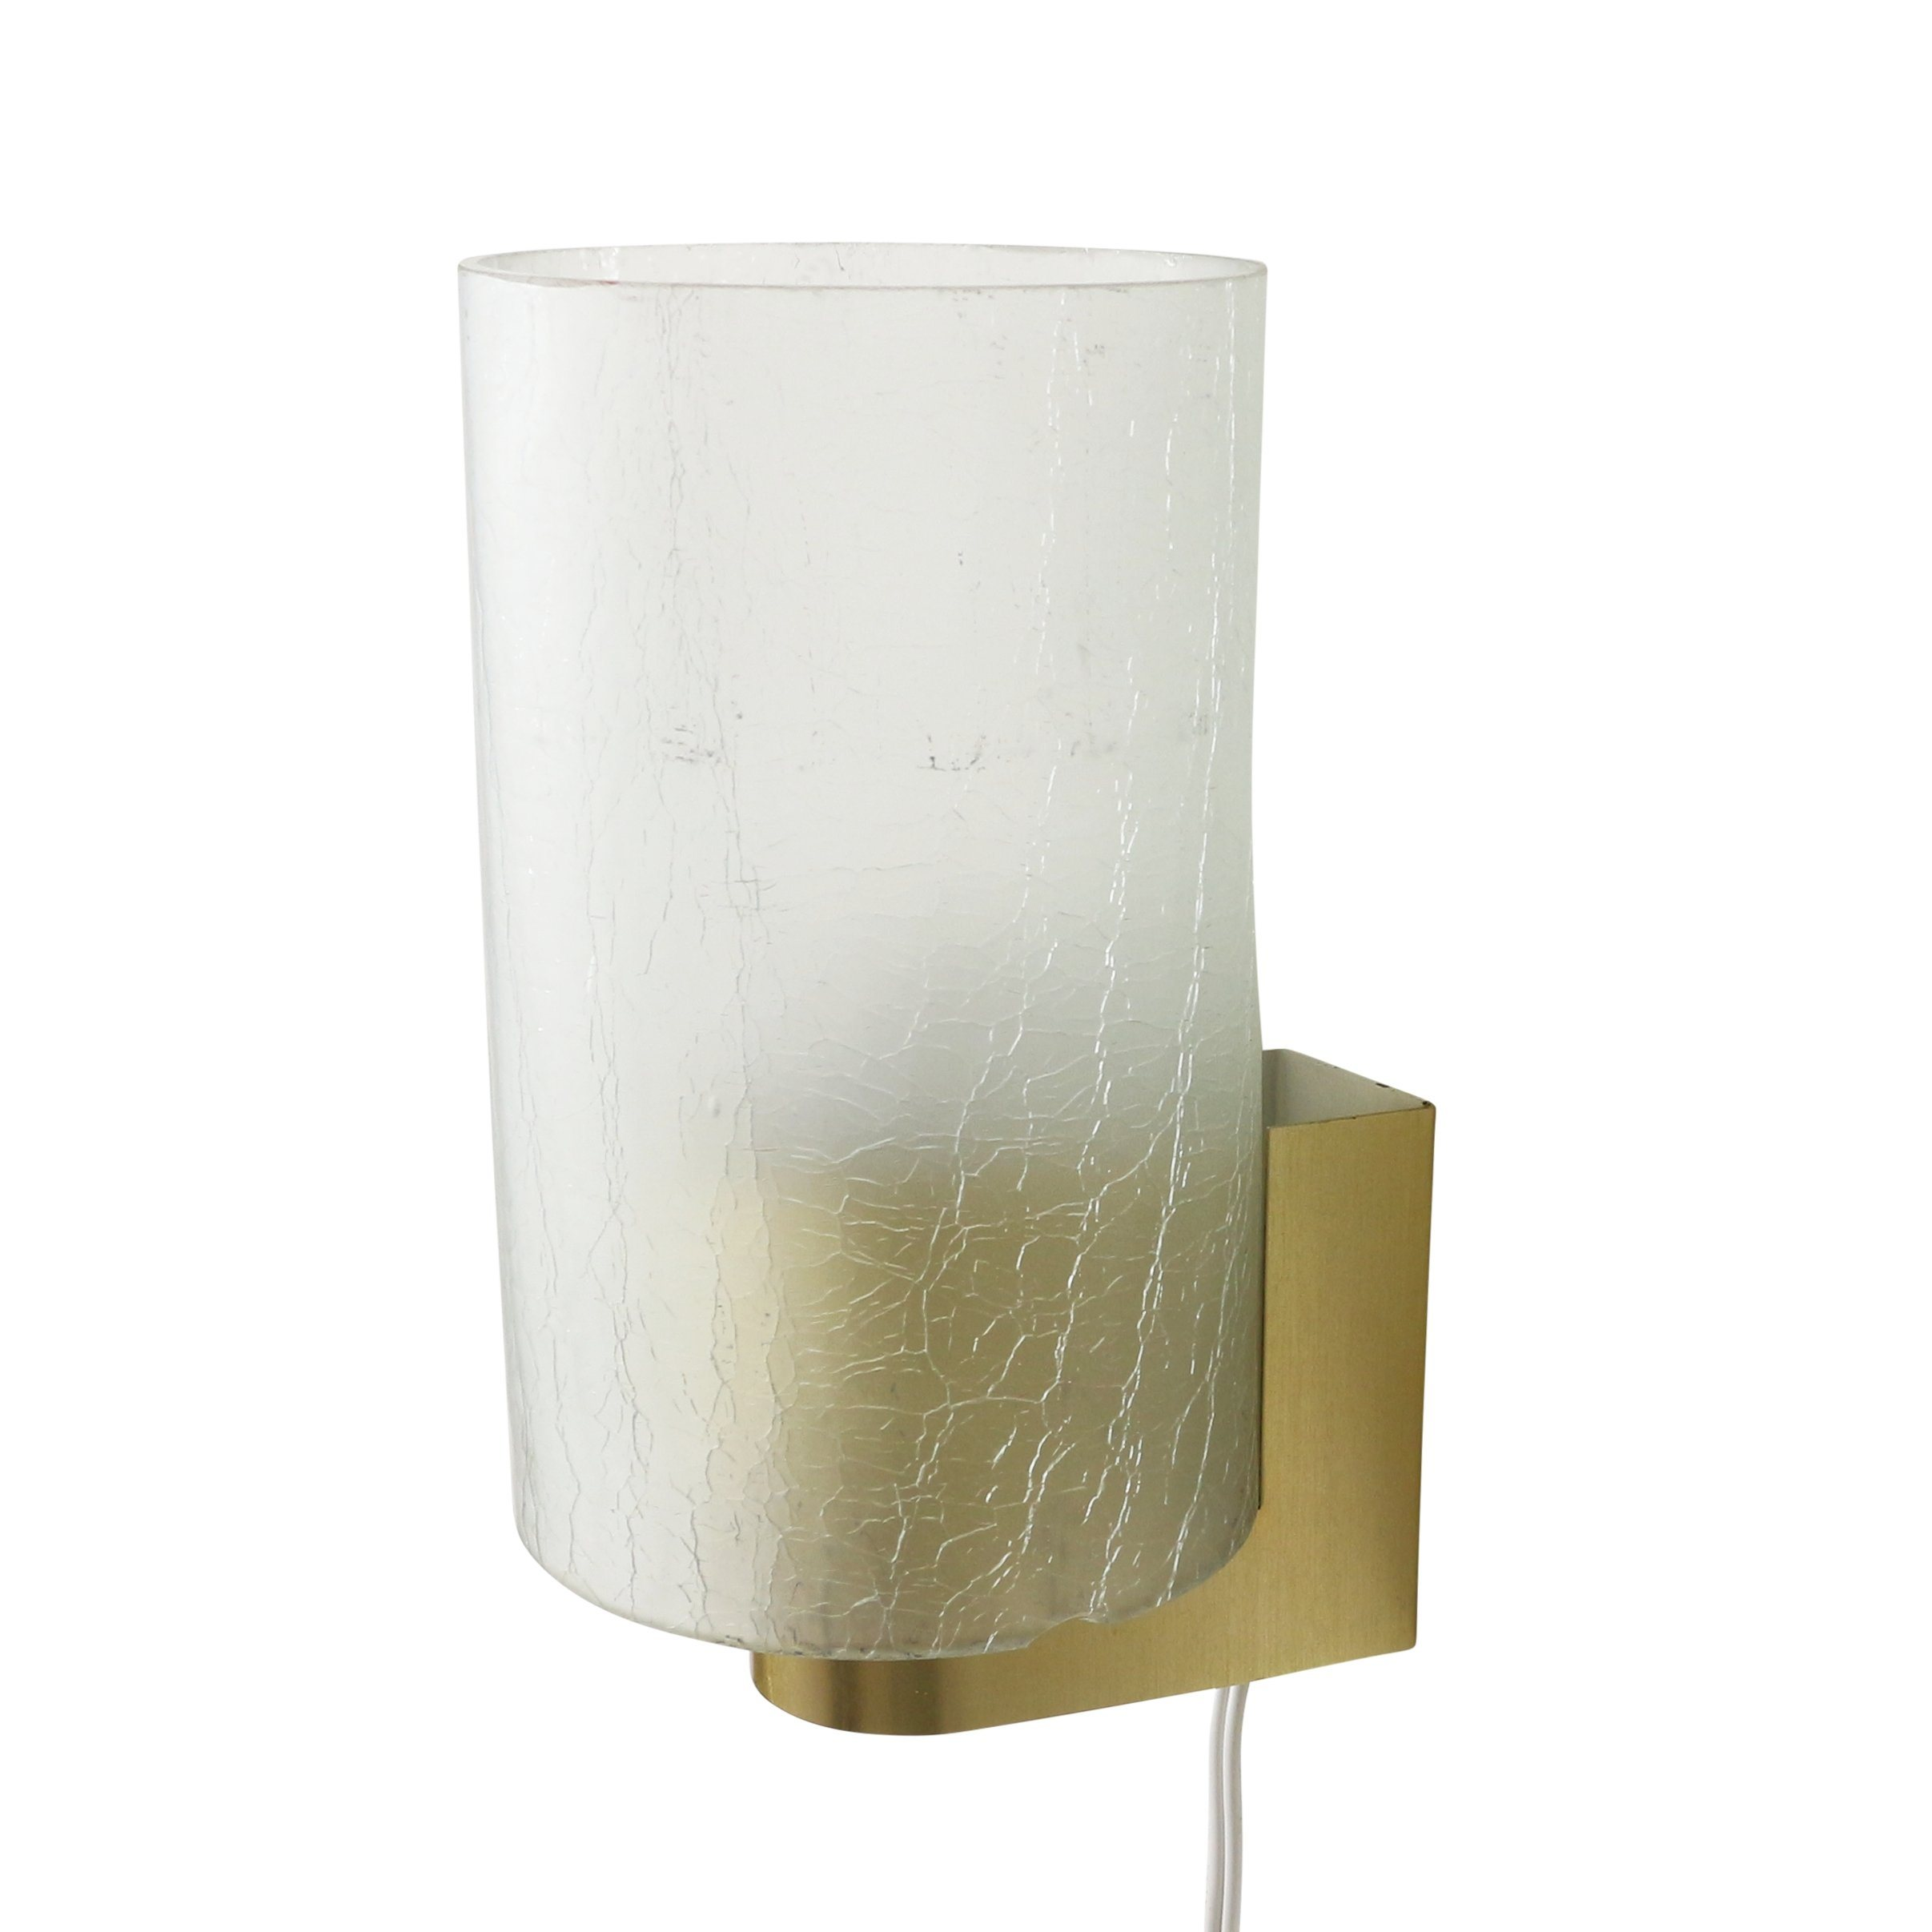 Modern wall light with frosted glass by philips holland 1960s 1201 modern wall light with frosted glass by philips holland 1960s aloadofball Image collections